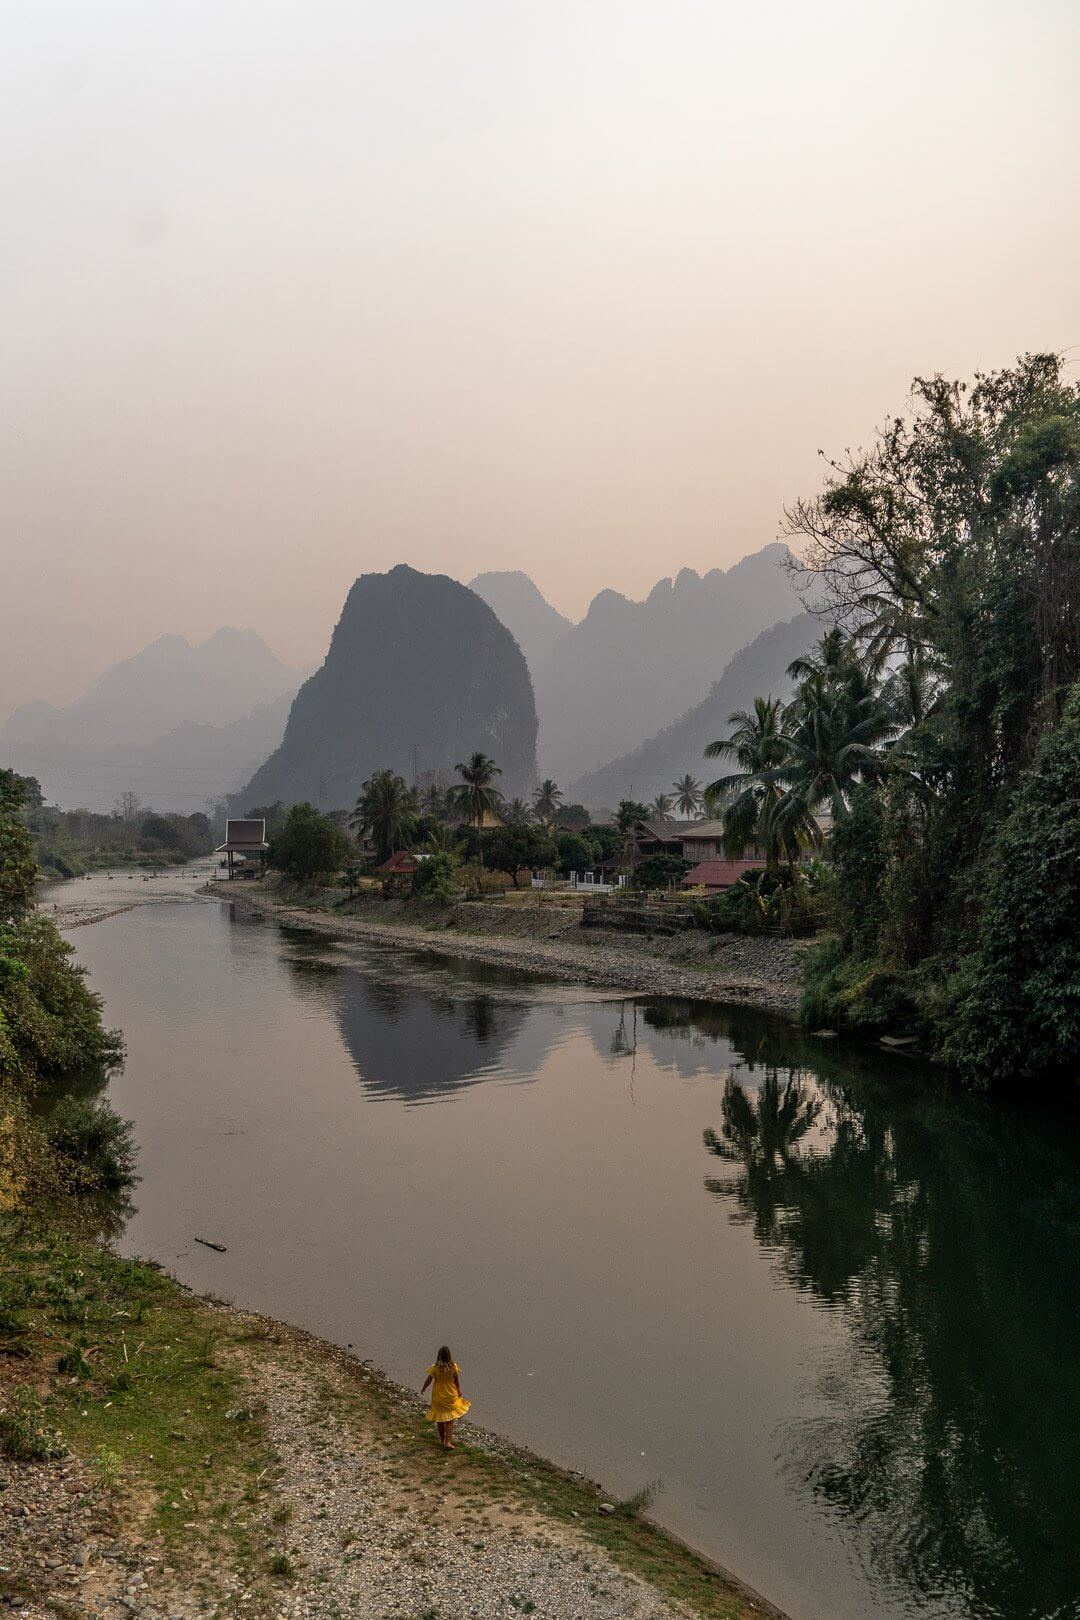 Girl by the water at the Pha Tang village near Vang Vieng in Laos